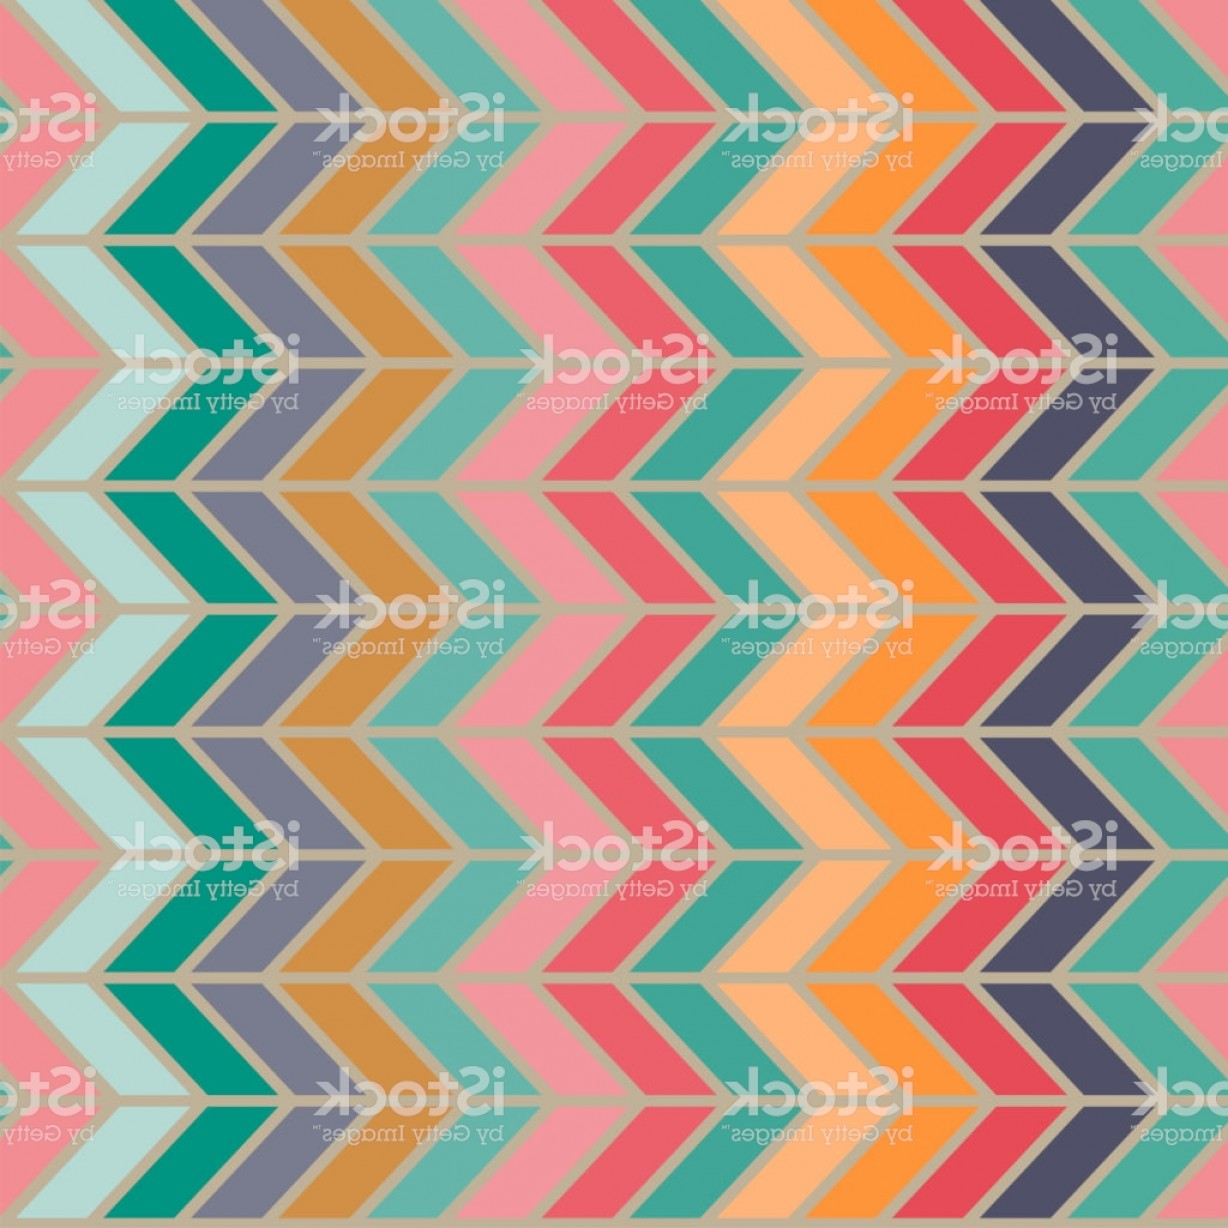 60s Vector: Seamless Vector Abstract Retro S Ribs Colorful Pattern Gm